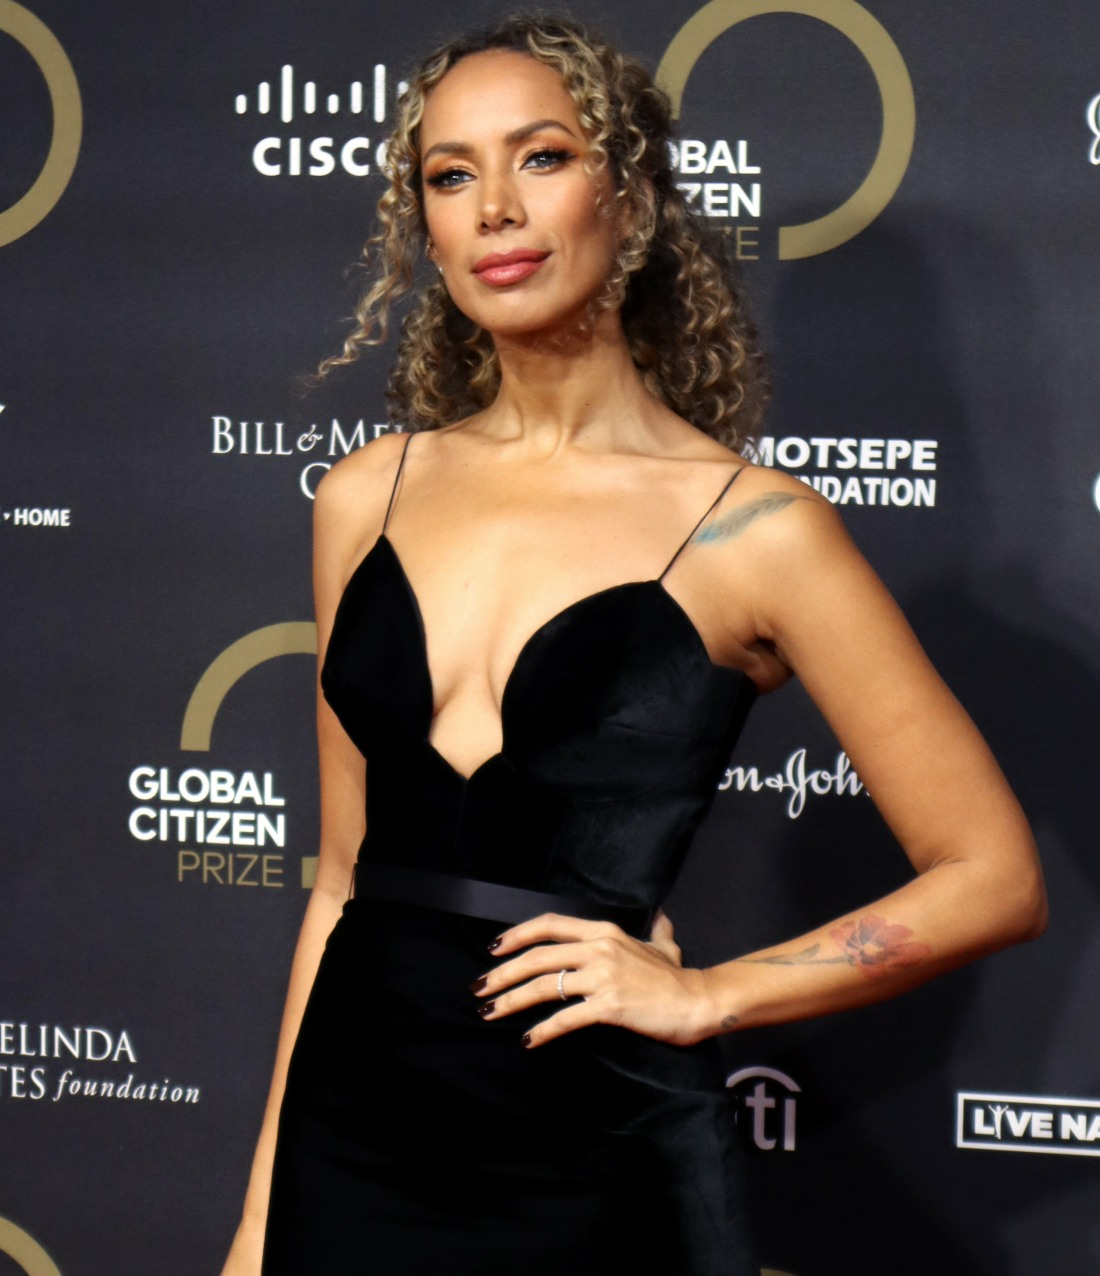 Leona Lewis at the Global Citizen Prize at the Royal Albert Hall in London 12th dec 2019 Photo by Cat morley